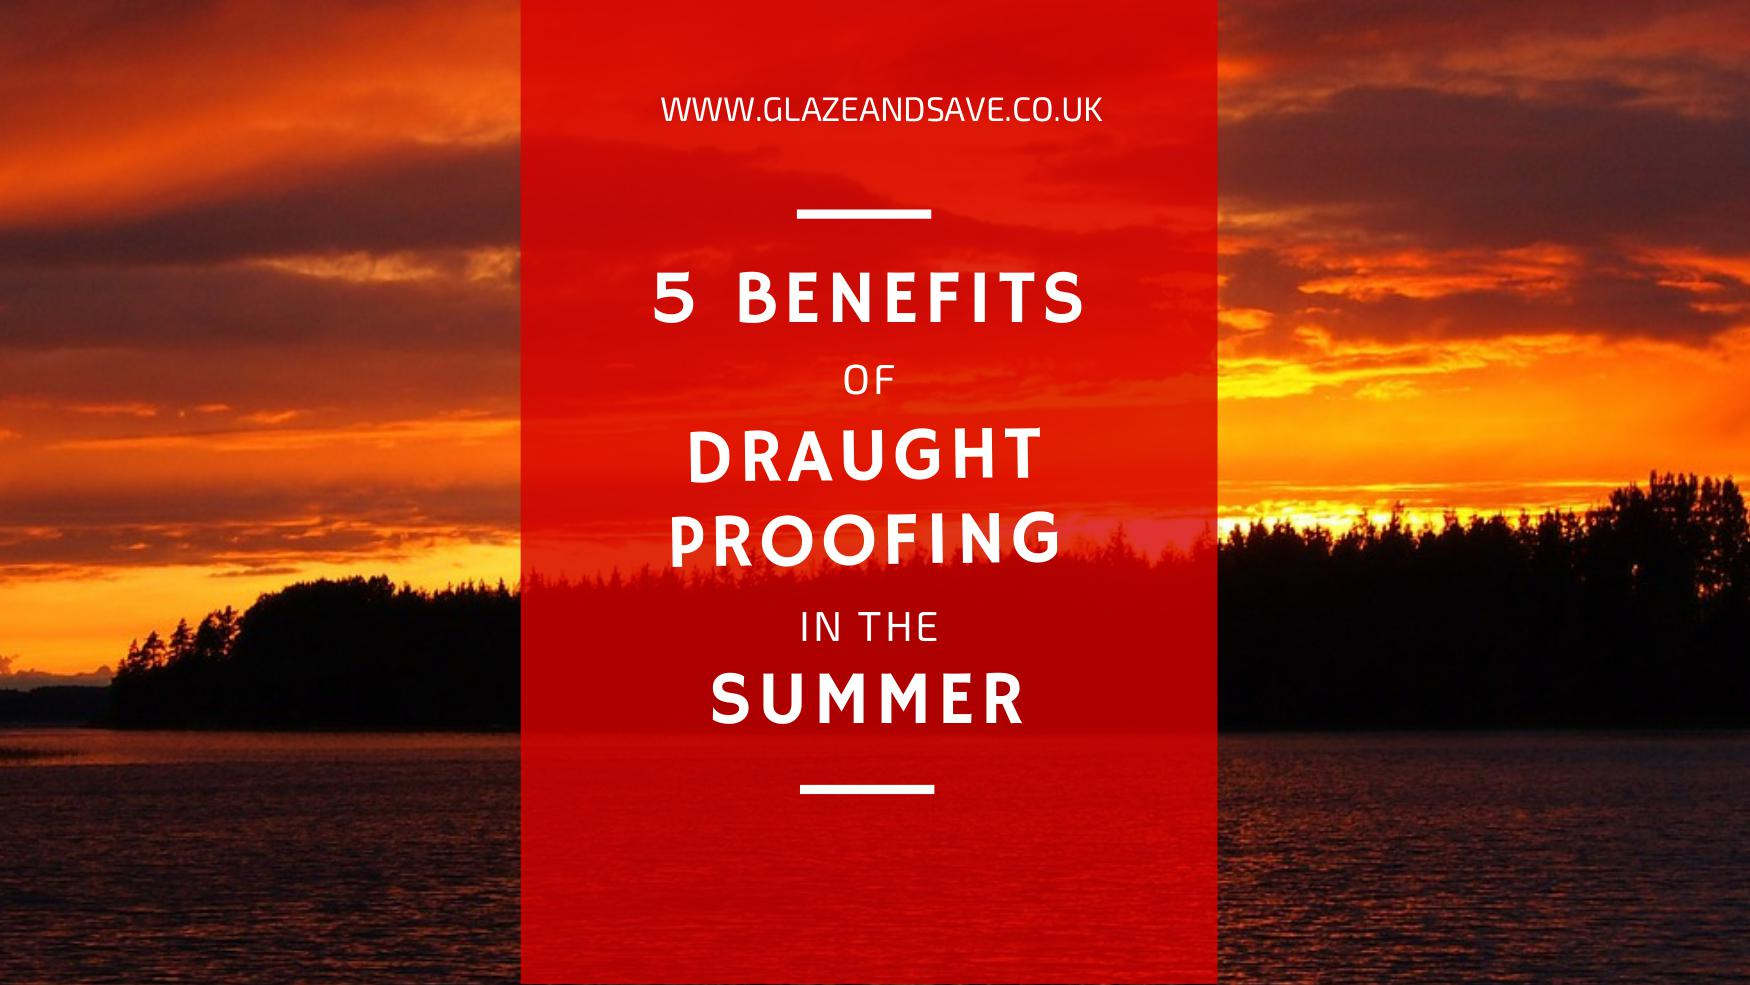 5 benefits of draught proofing in the summer by Glaze & Save bespoke magnetic secondary glazing and draught proofing based in Perth Scotland.